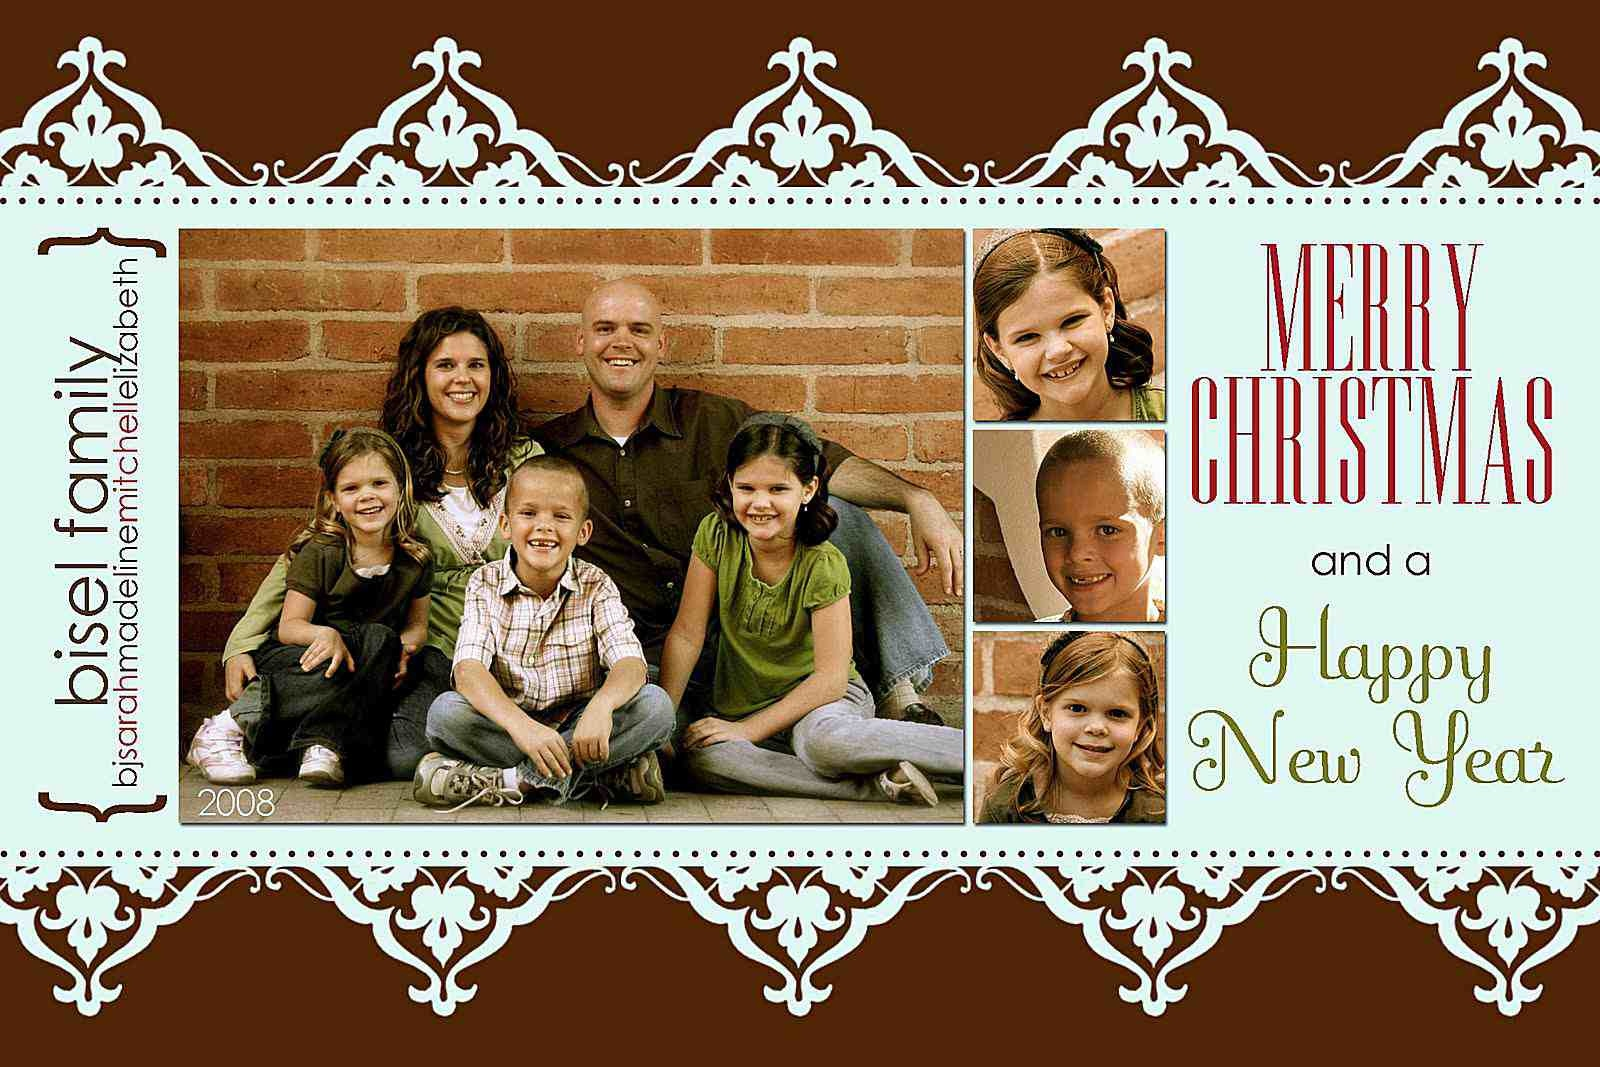 11 Free Templates For Christmas Photo Cards - Free Printable Christmas Photo Collage